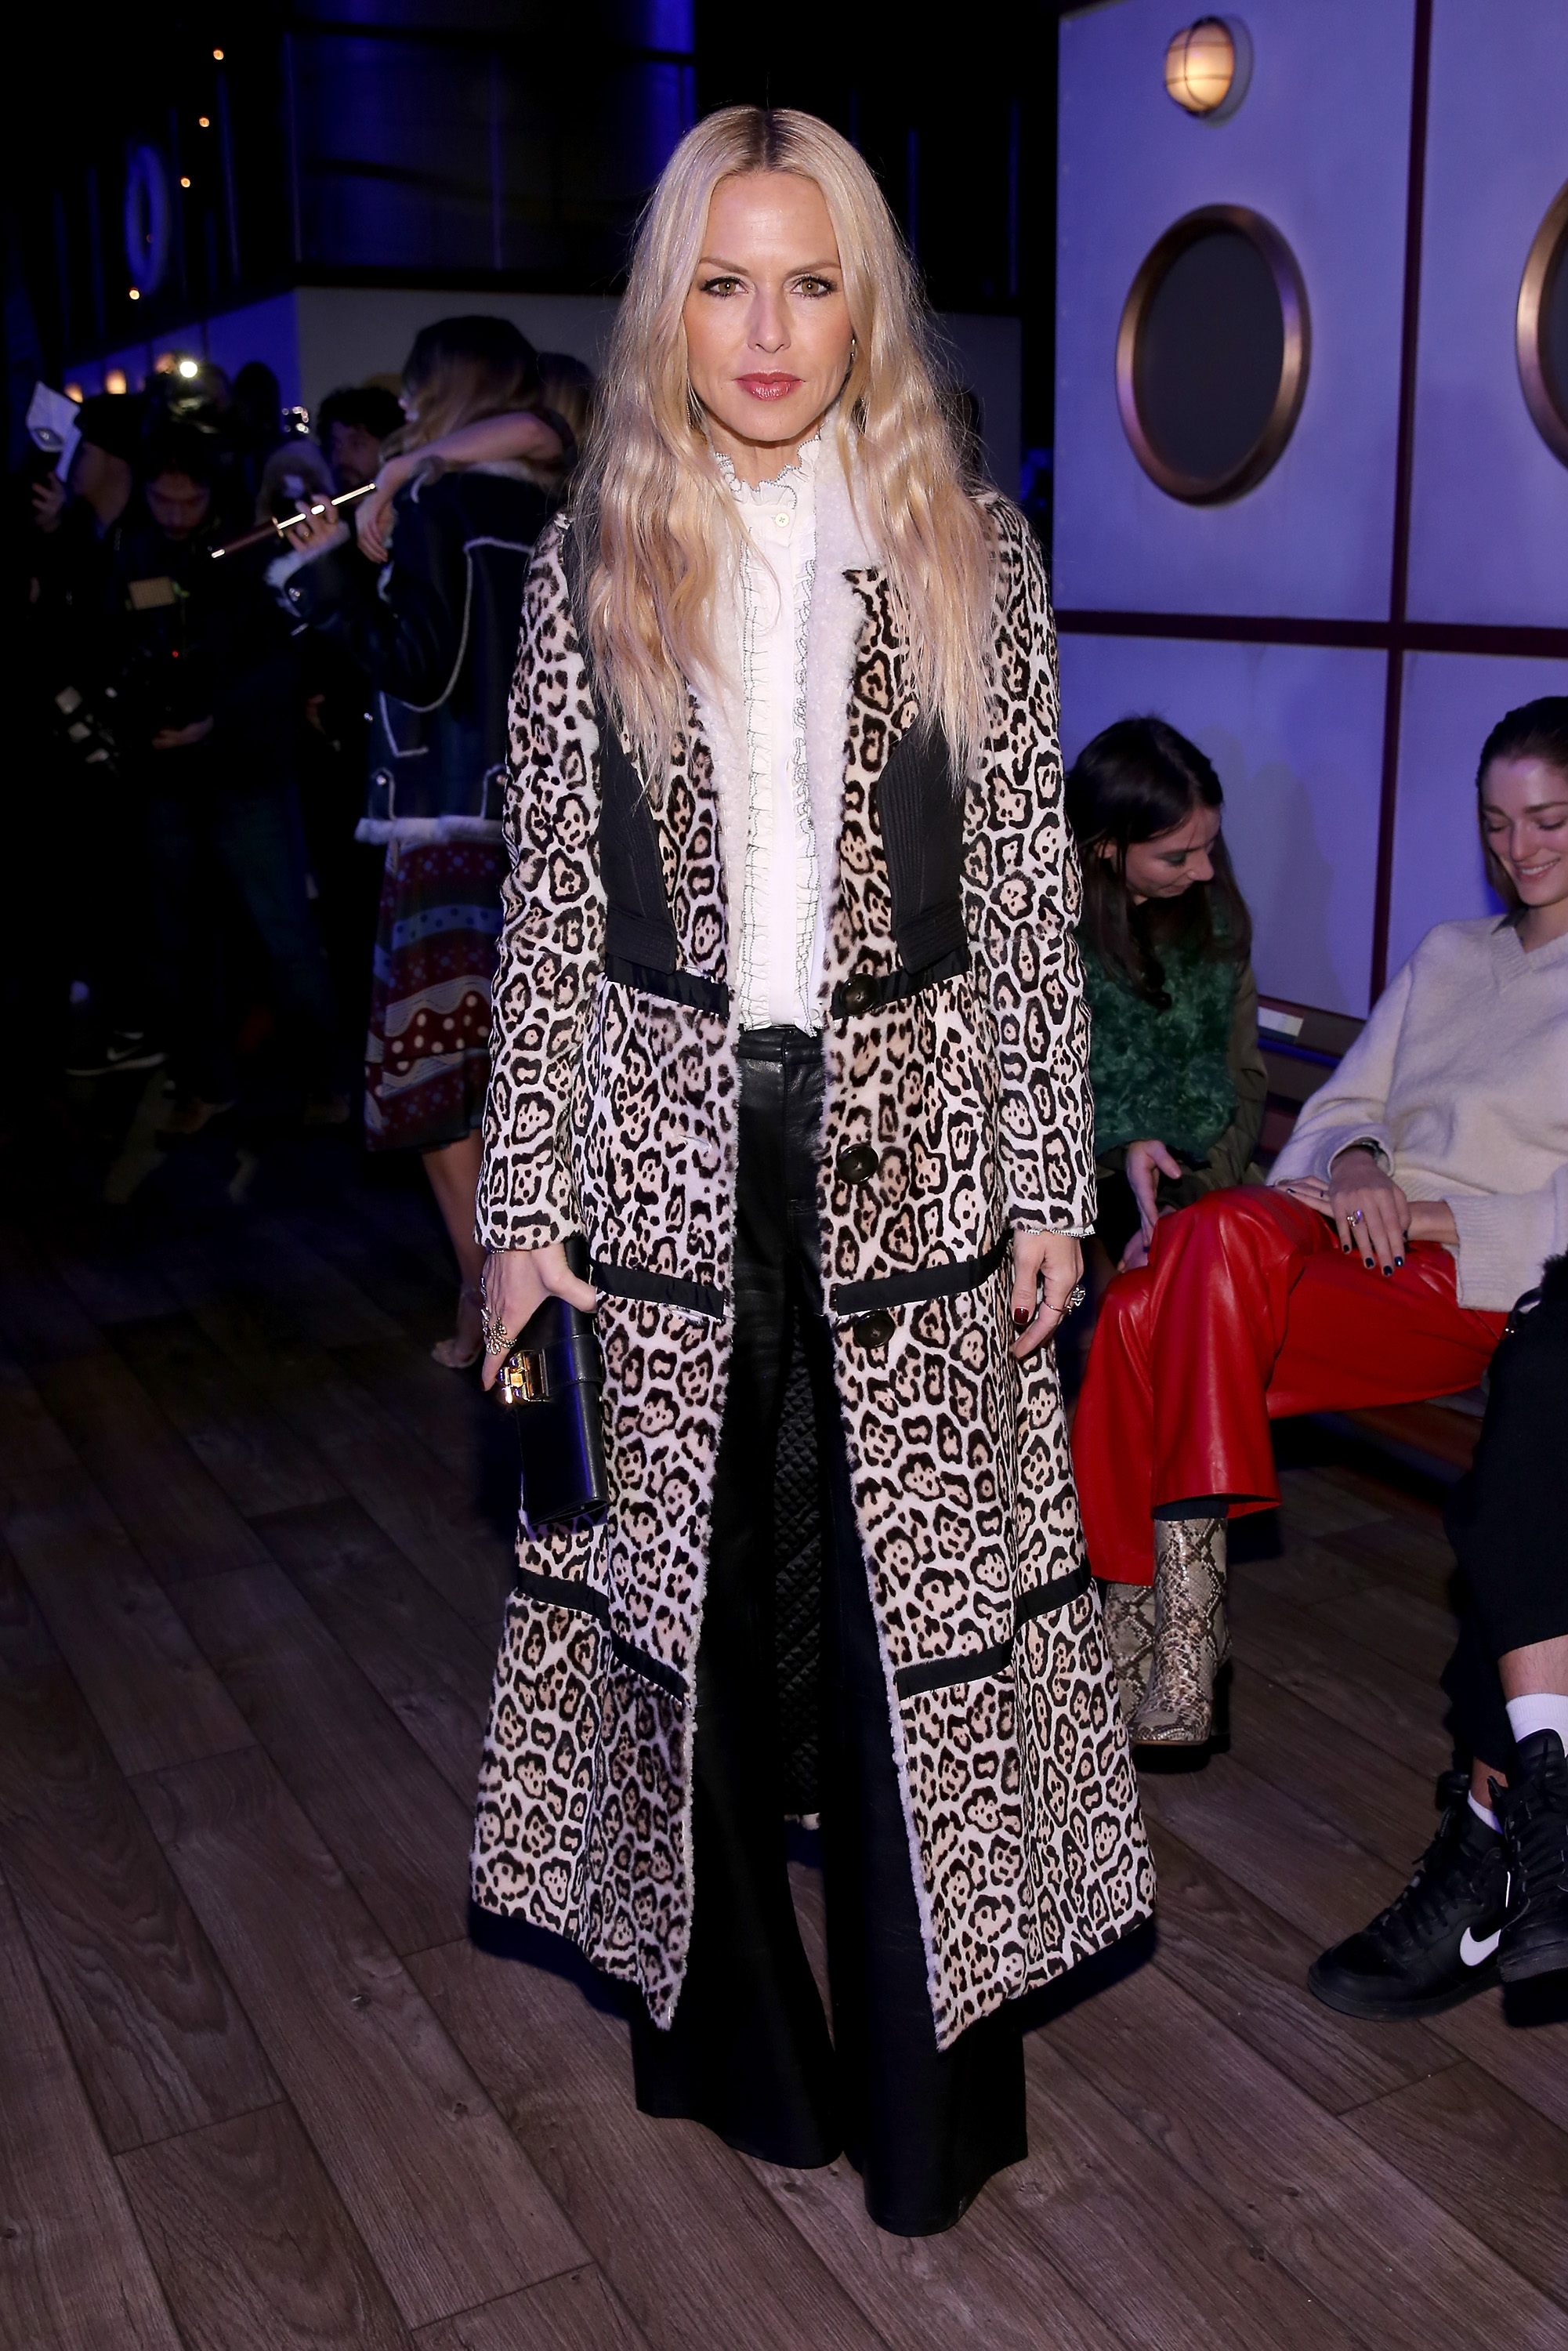 NEW YORK, NY - FEBRUARY 15: Designer Rachel Zoe attends the Tommy Hilfiger Women's Fall 2016 show during New York Fashion Week: The Shows at Park Avenue Armory on February 15, 2016 in New York City. (Photo by Neilson Barnard/Getty Images for Tommy Hilfiger)